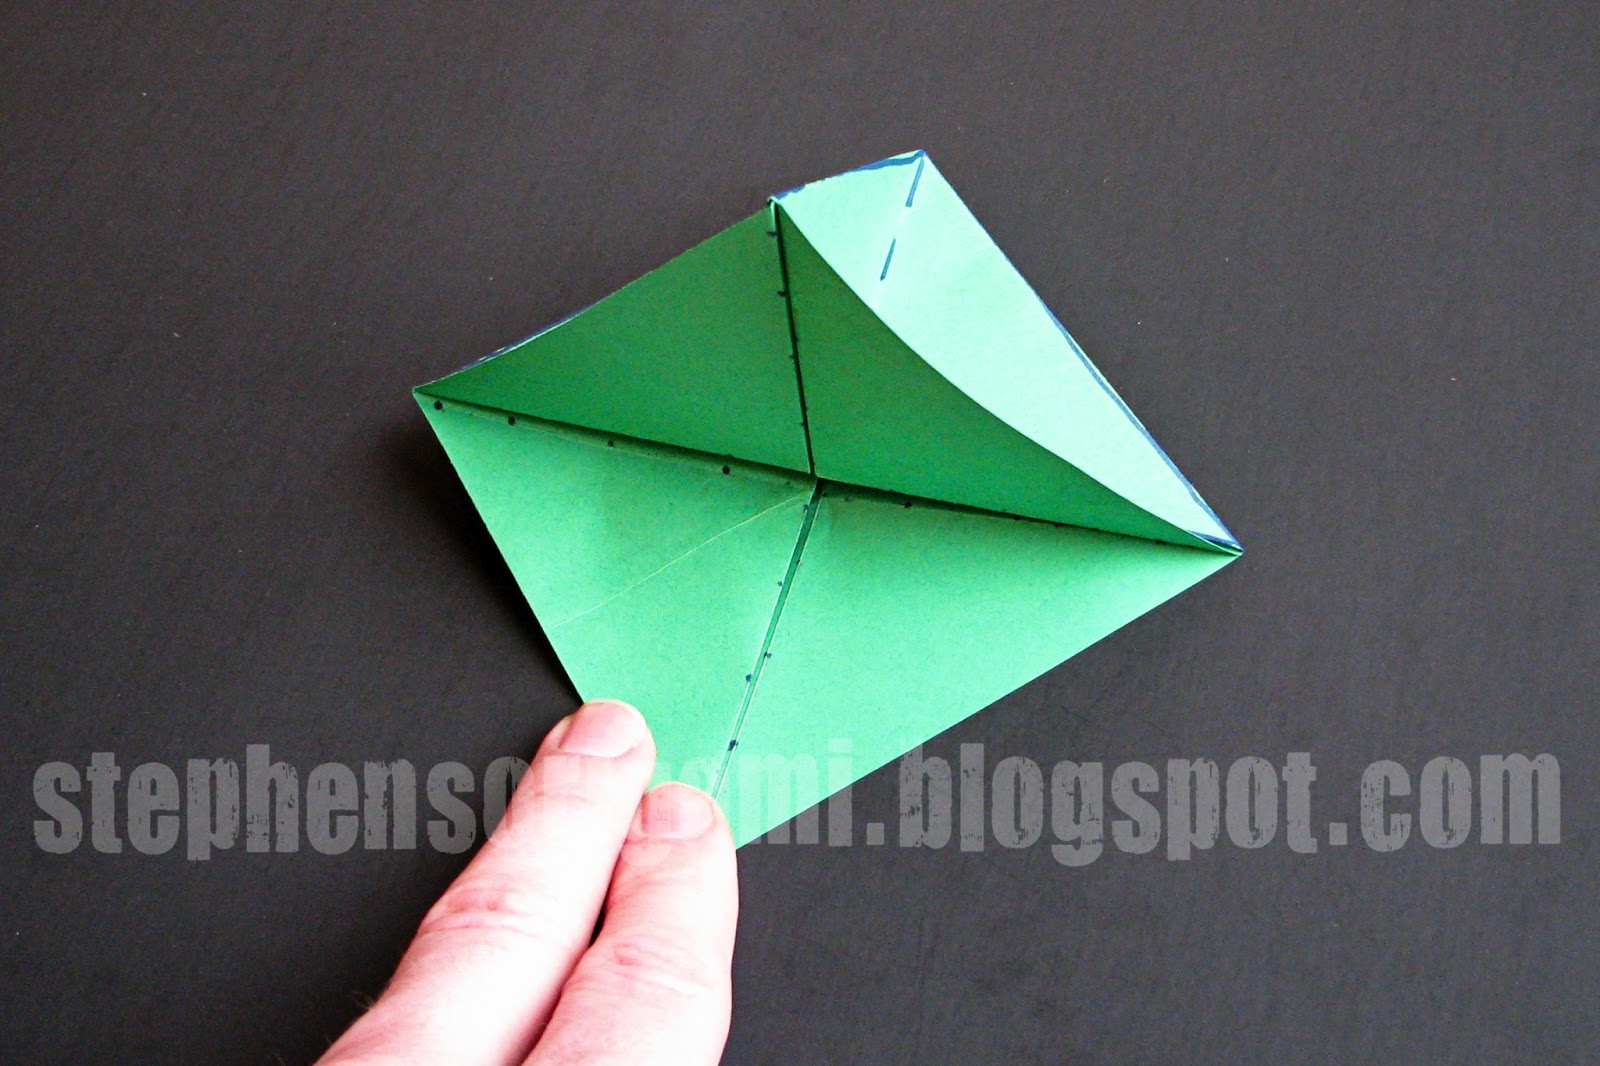 christmas tree origami Find and save ideas about origami christmas tree on pinterest | see more ideas about origami xmas, origami tree and origami xmas tree.